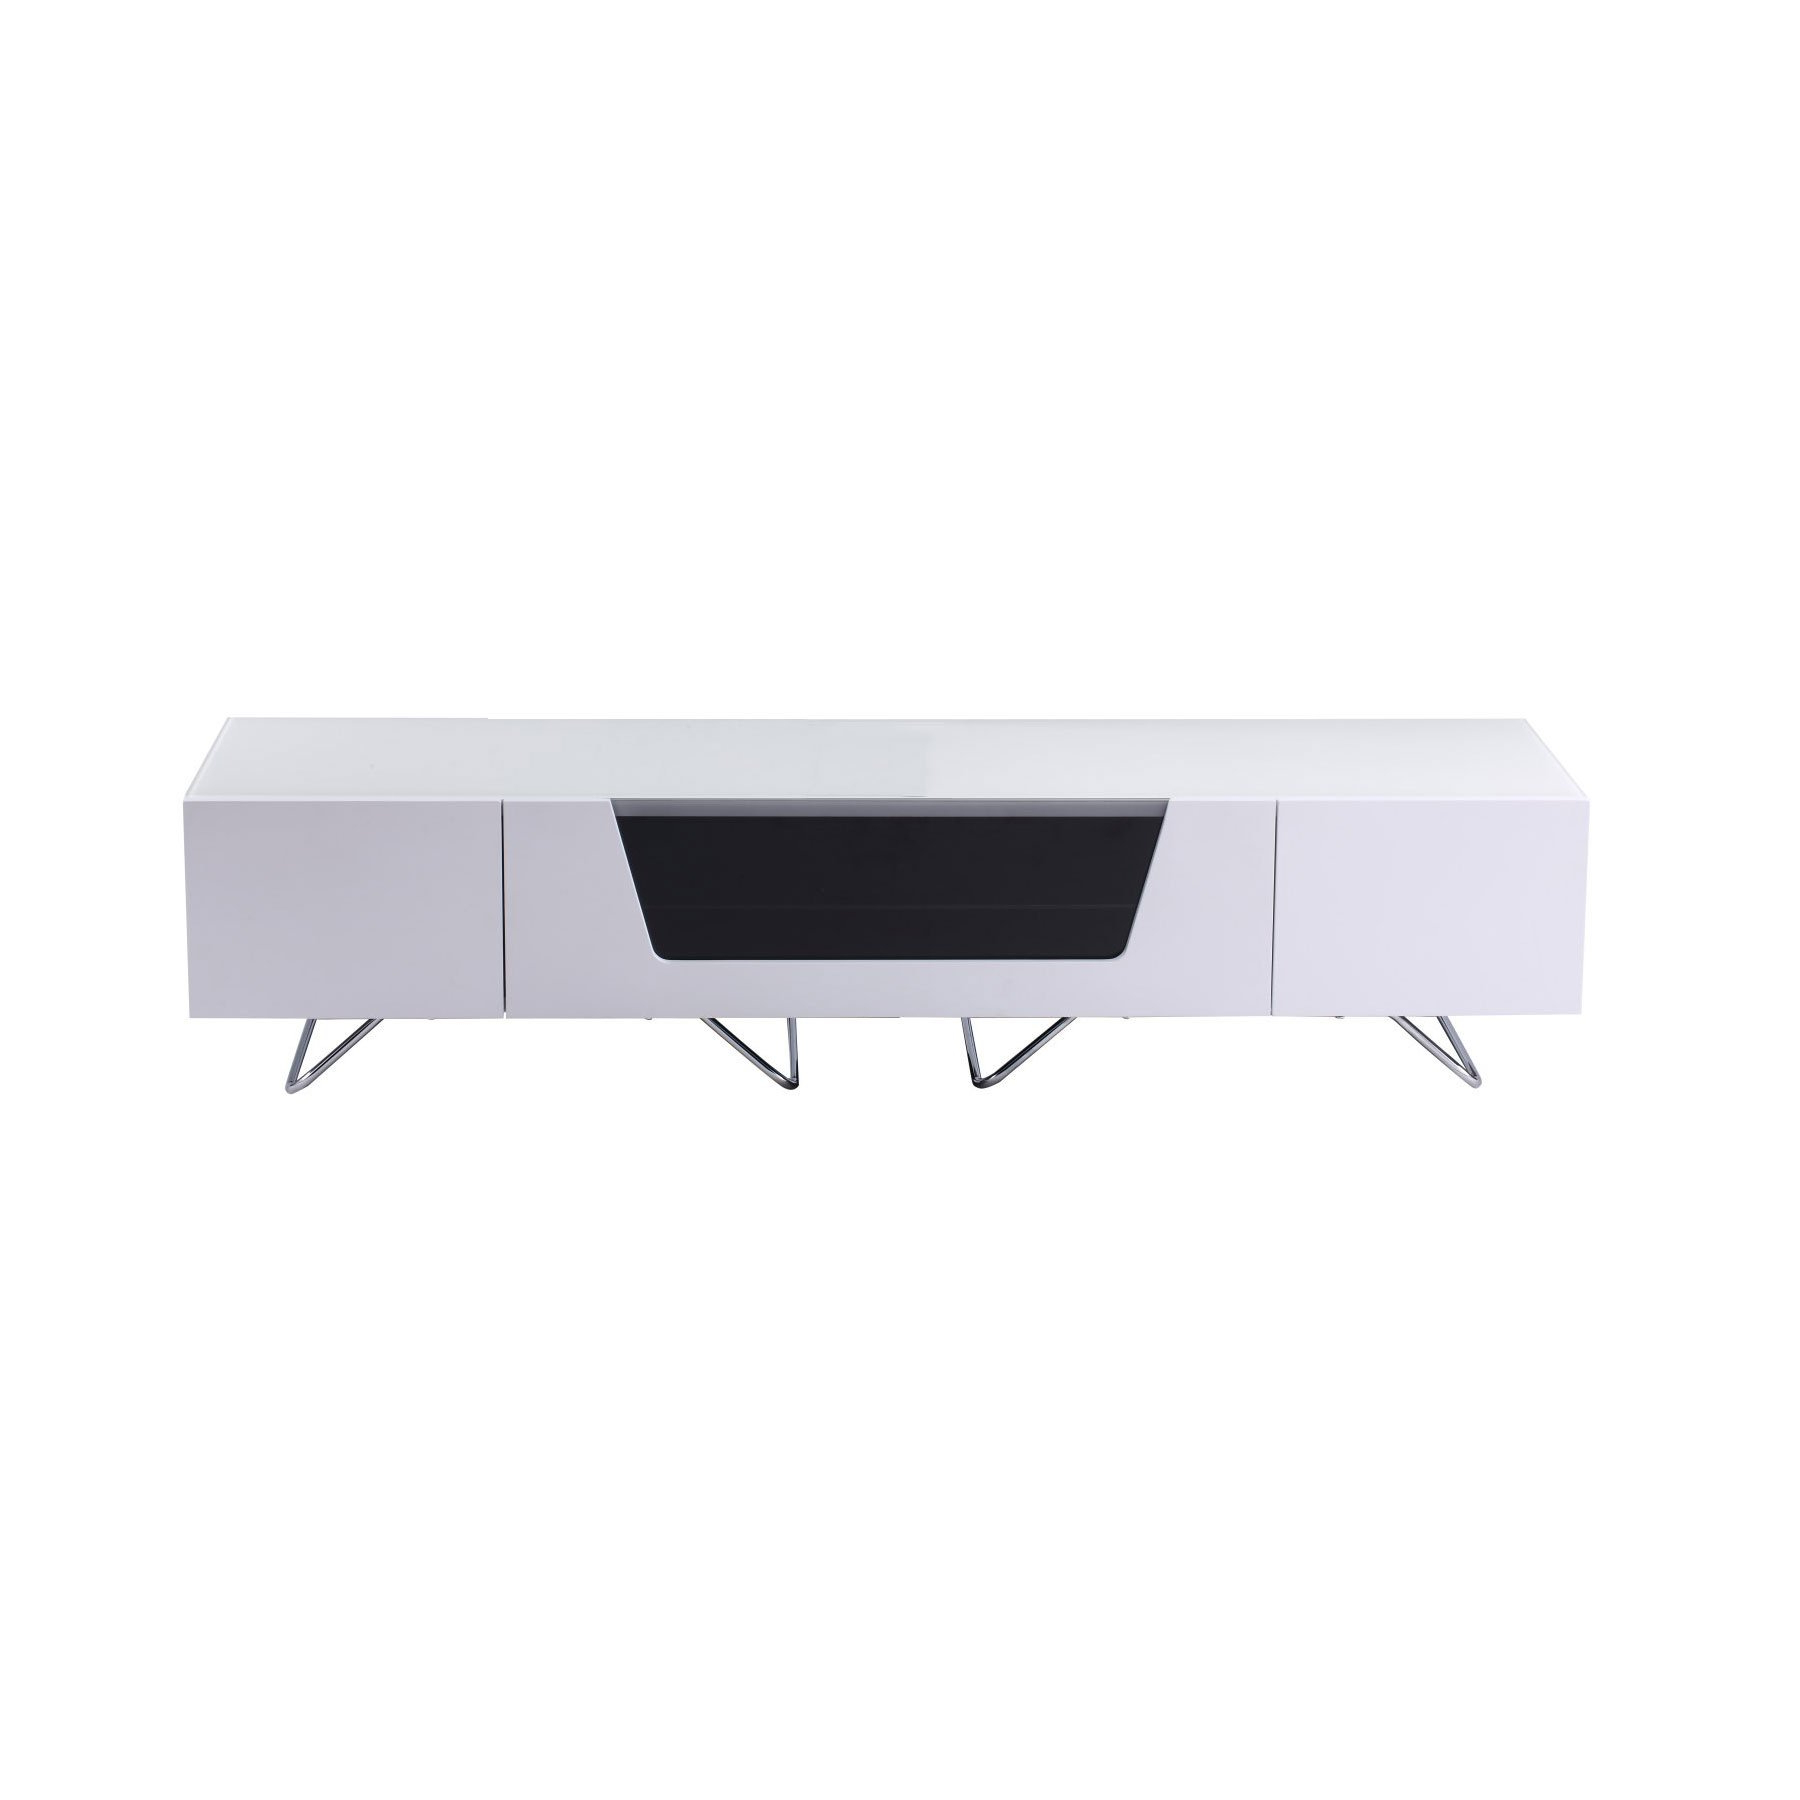 """Well Known Alphason Chromium 2 160cm White Tv Stand For Up To 75"""" Tvs Inside Chromium Tv Stands (View 11 of 25)"""